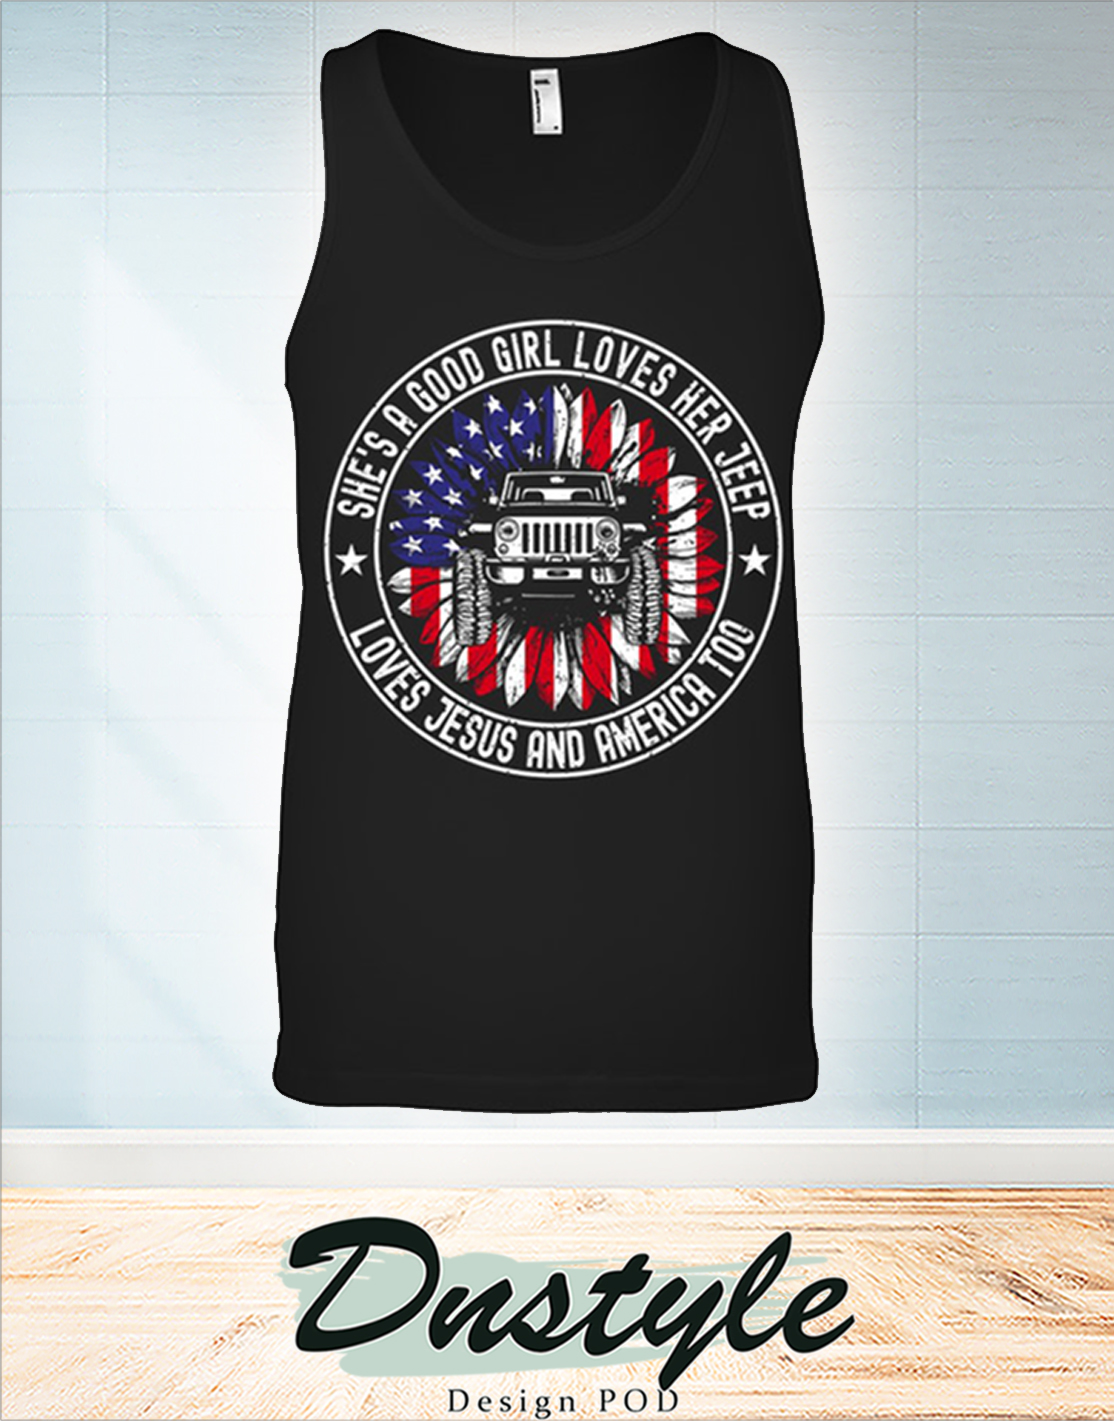 Sunflower she's a good girl love jesus and america too tank